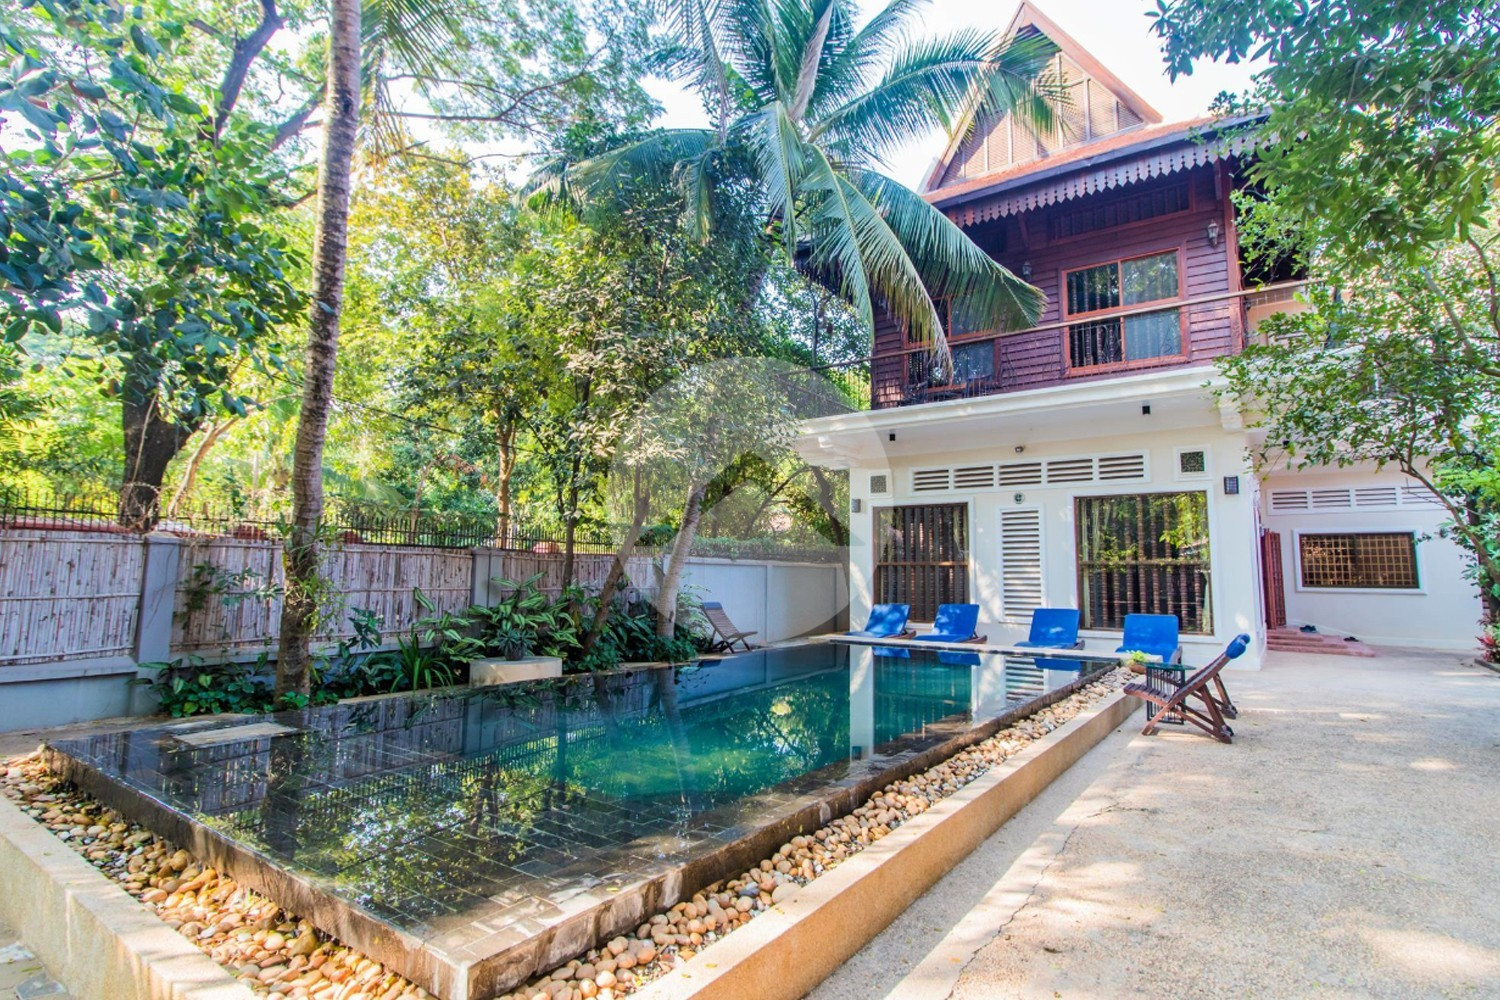 4 Bedroom Villa For Sale - Slor Kram, Siem Reap